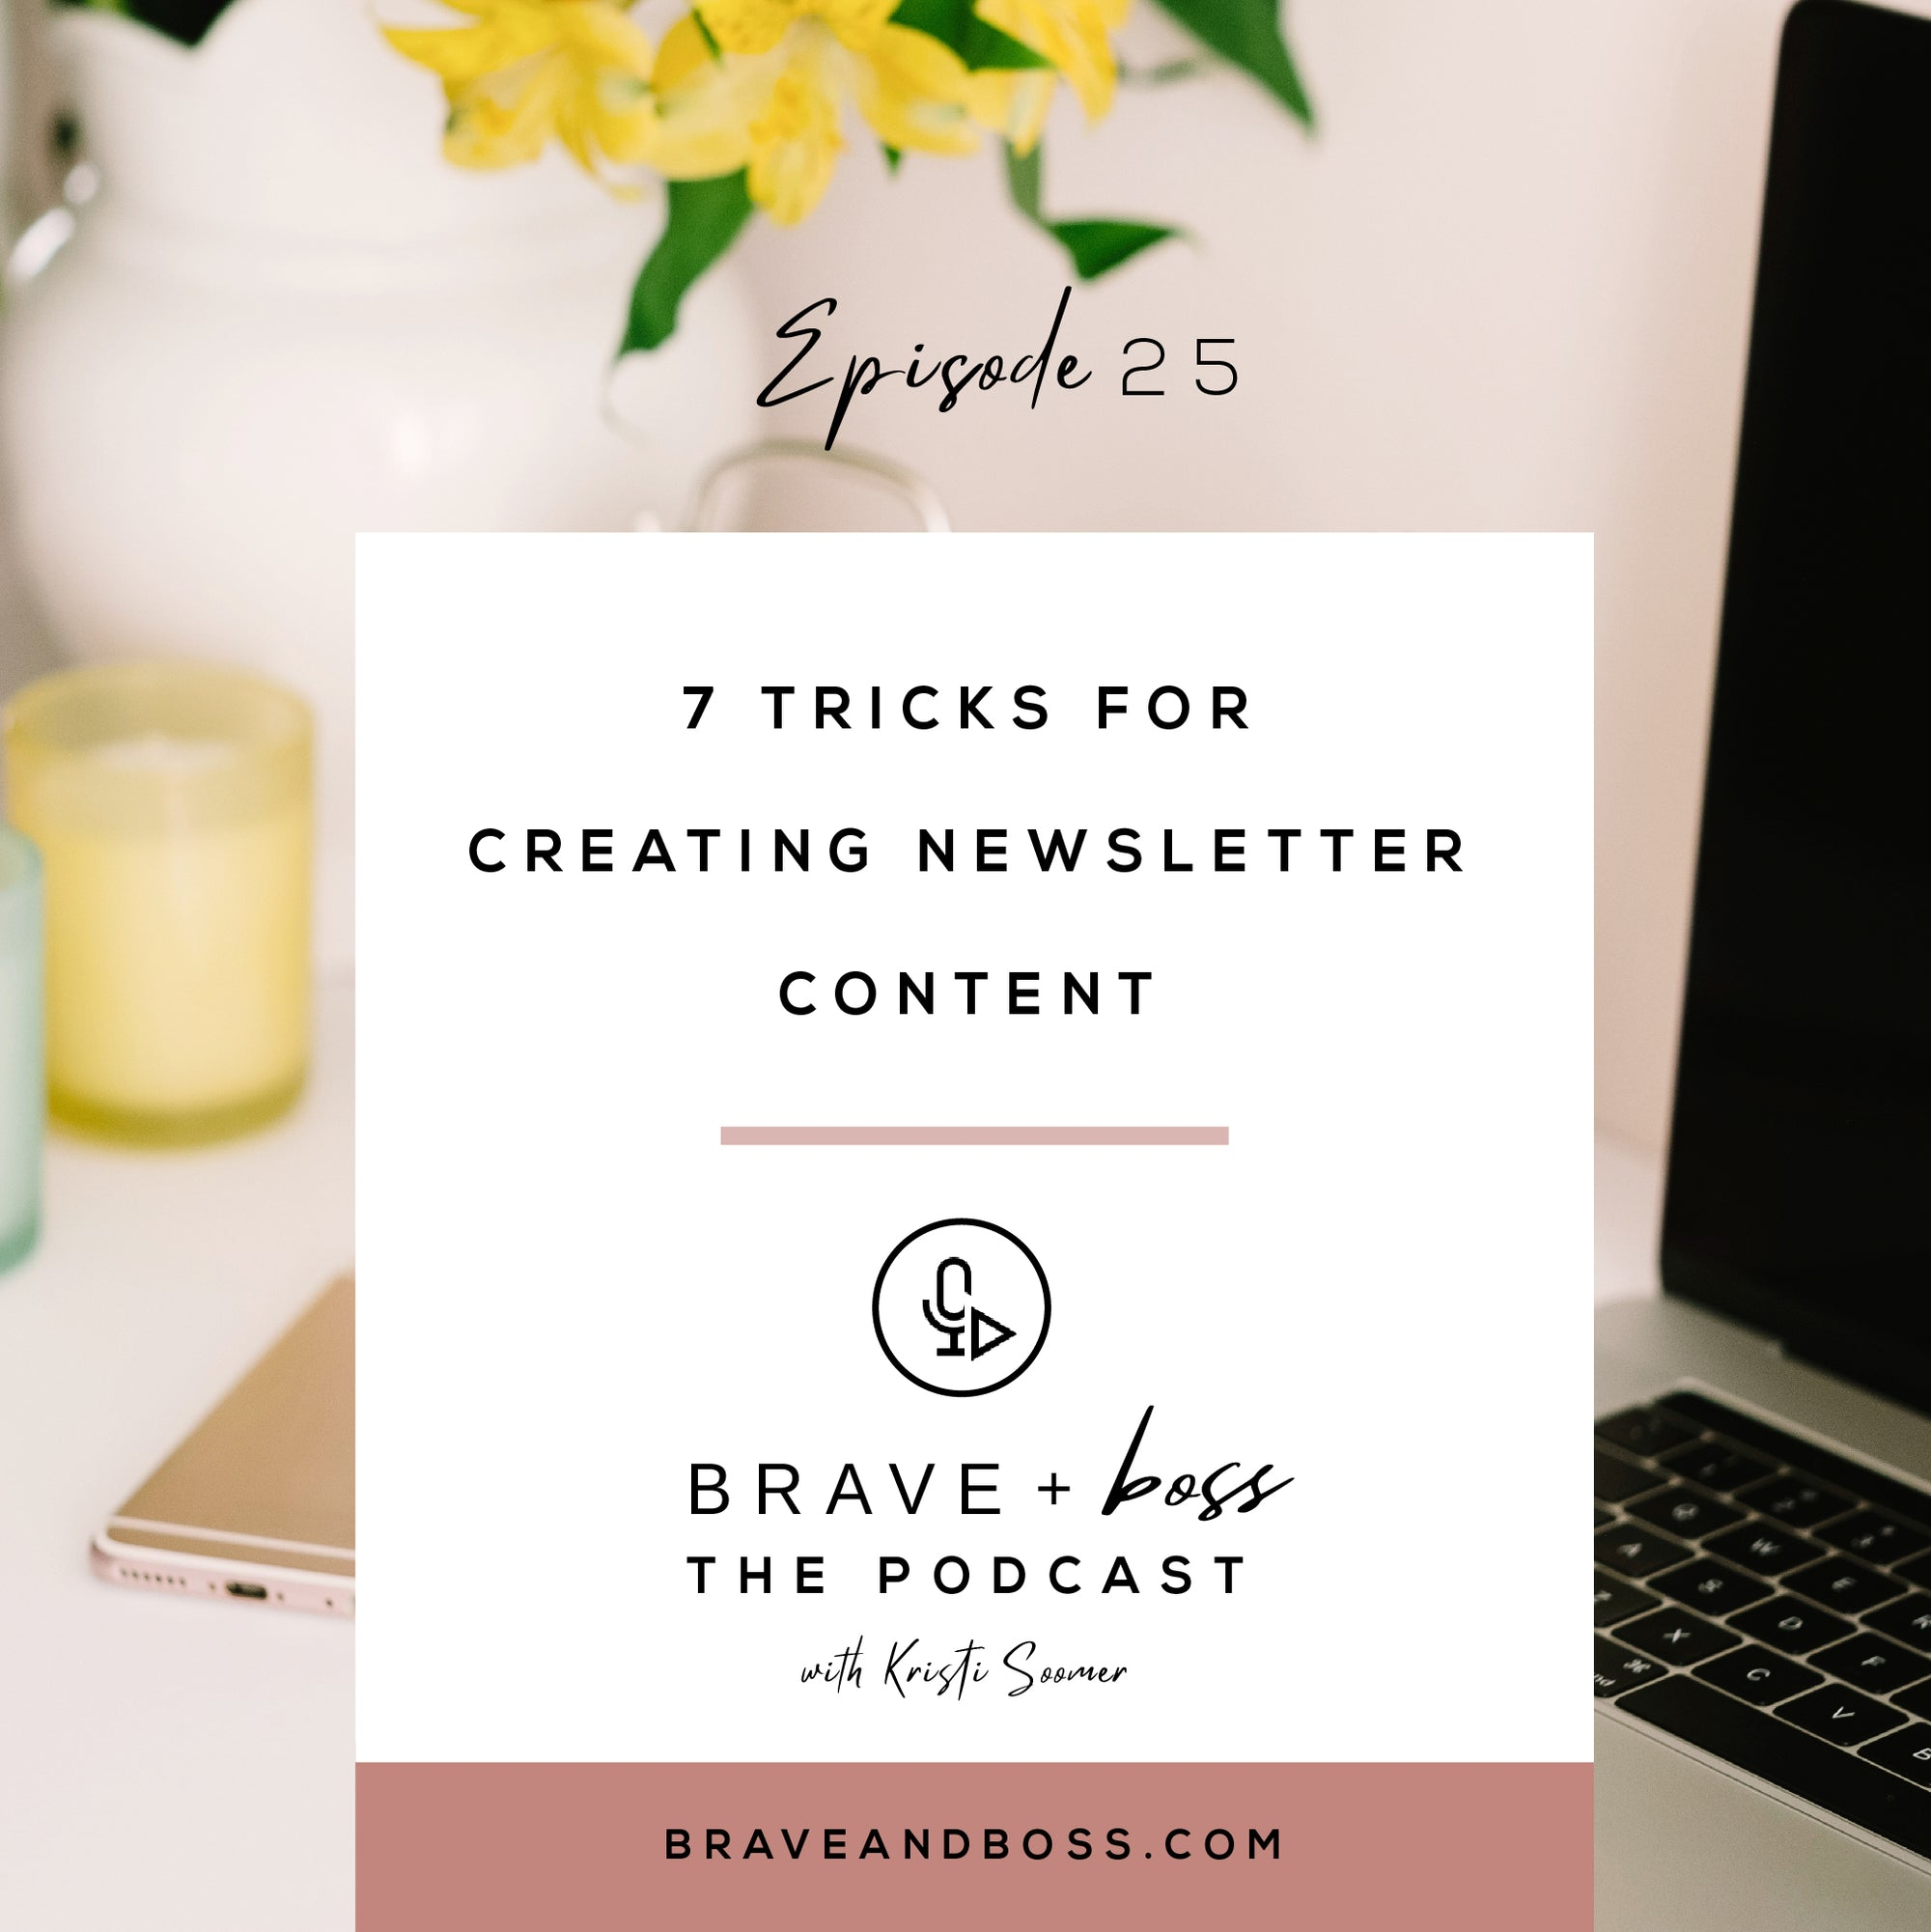 7 Tricks for Creating Newsletter Content